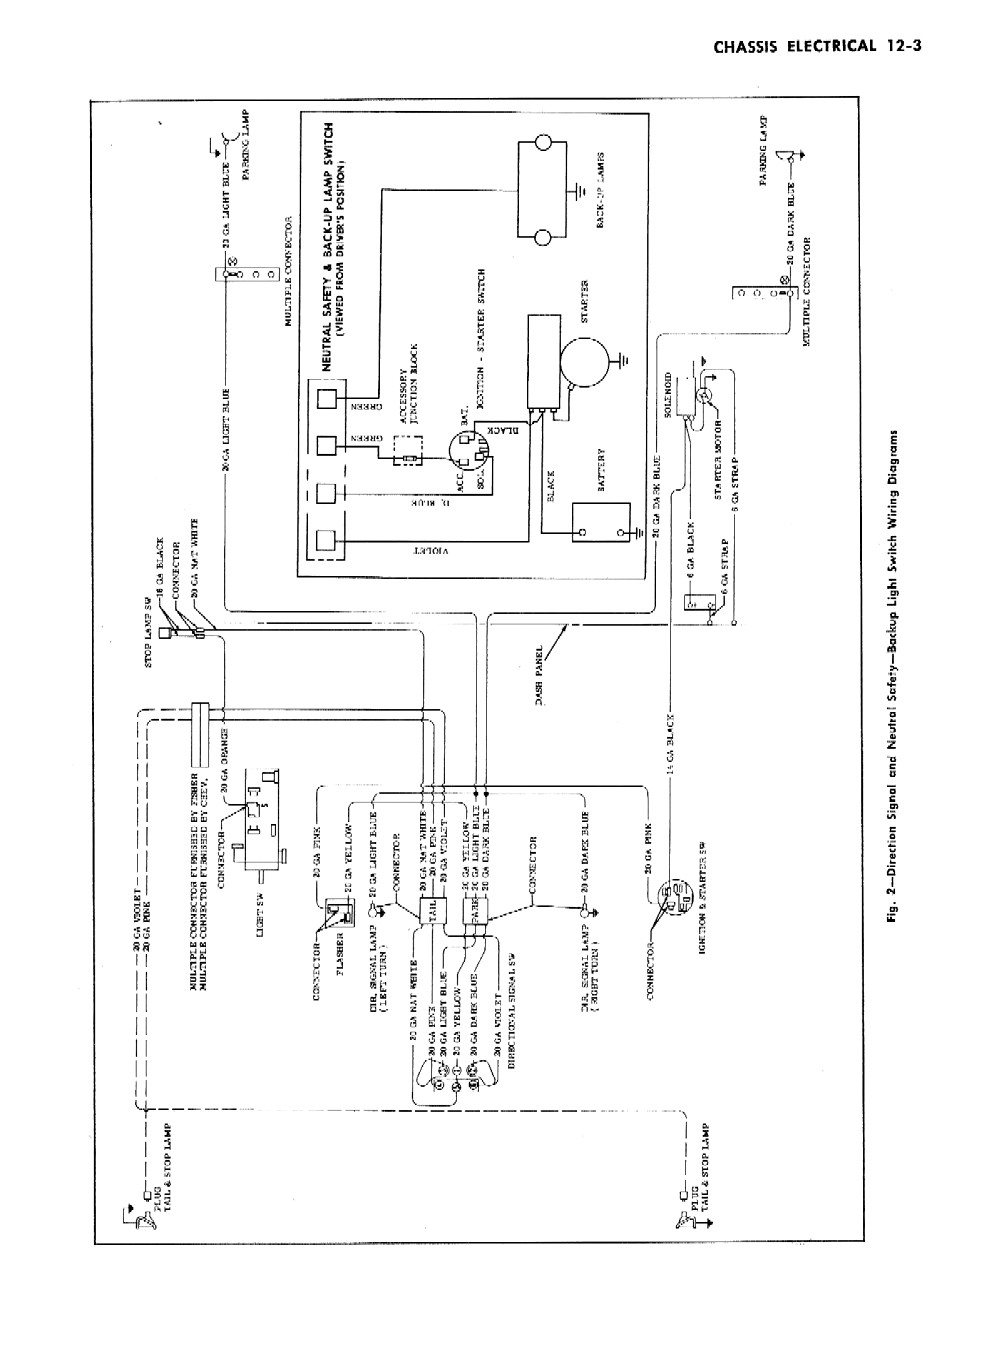 1955 chevrolet wiring diagrams  u2013 1955 classic chevrolet